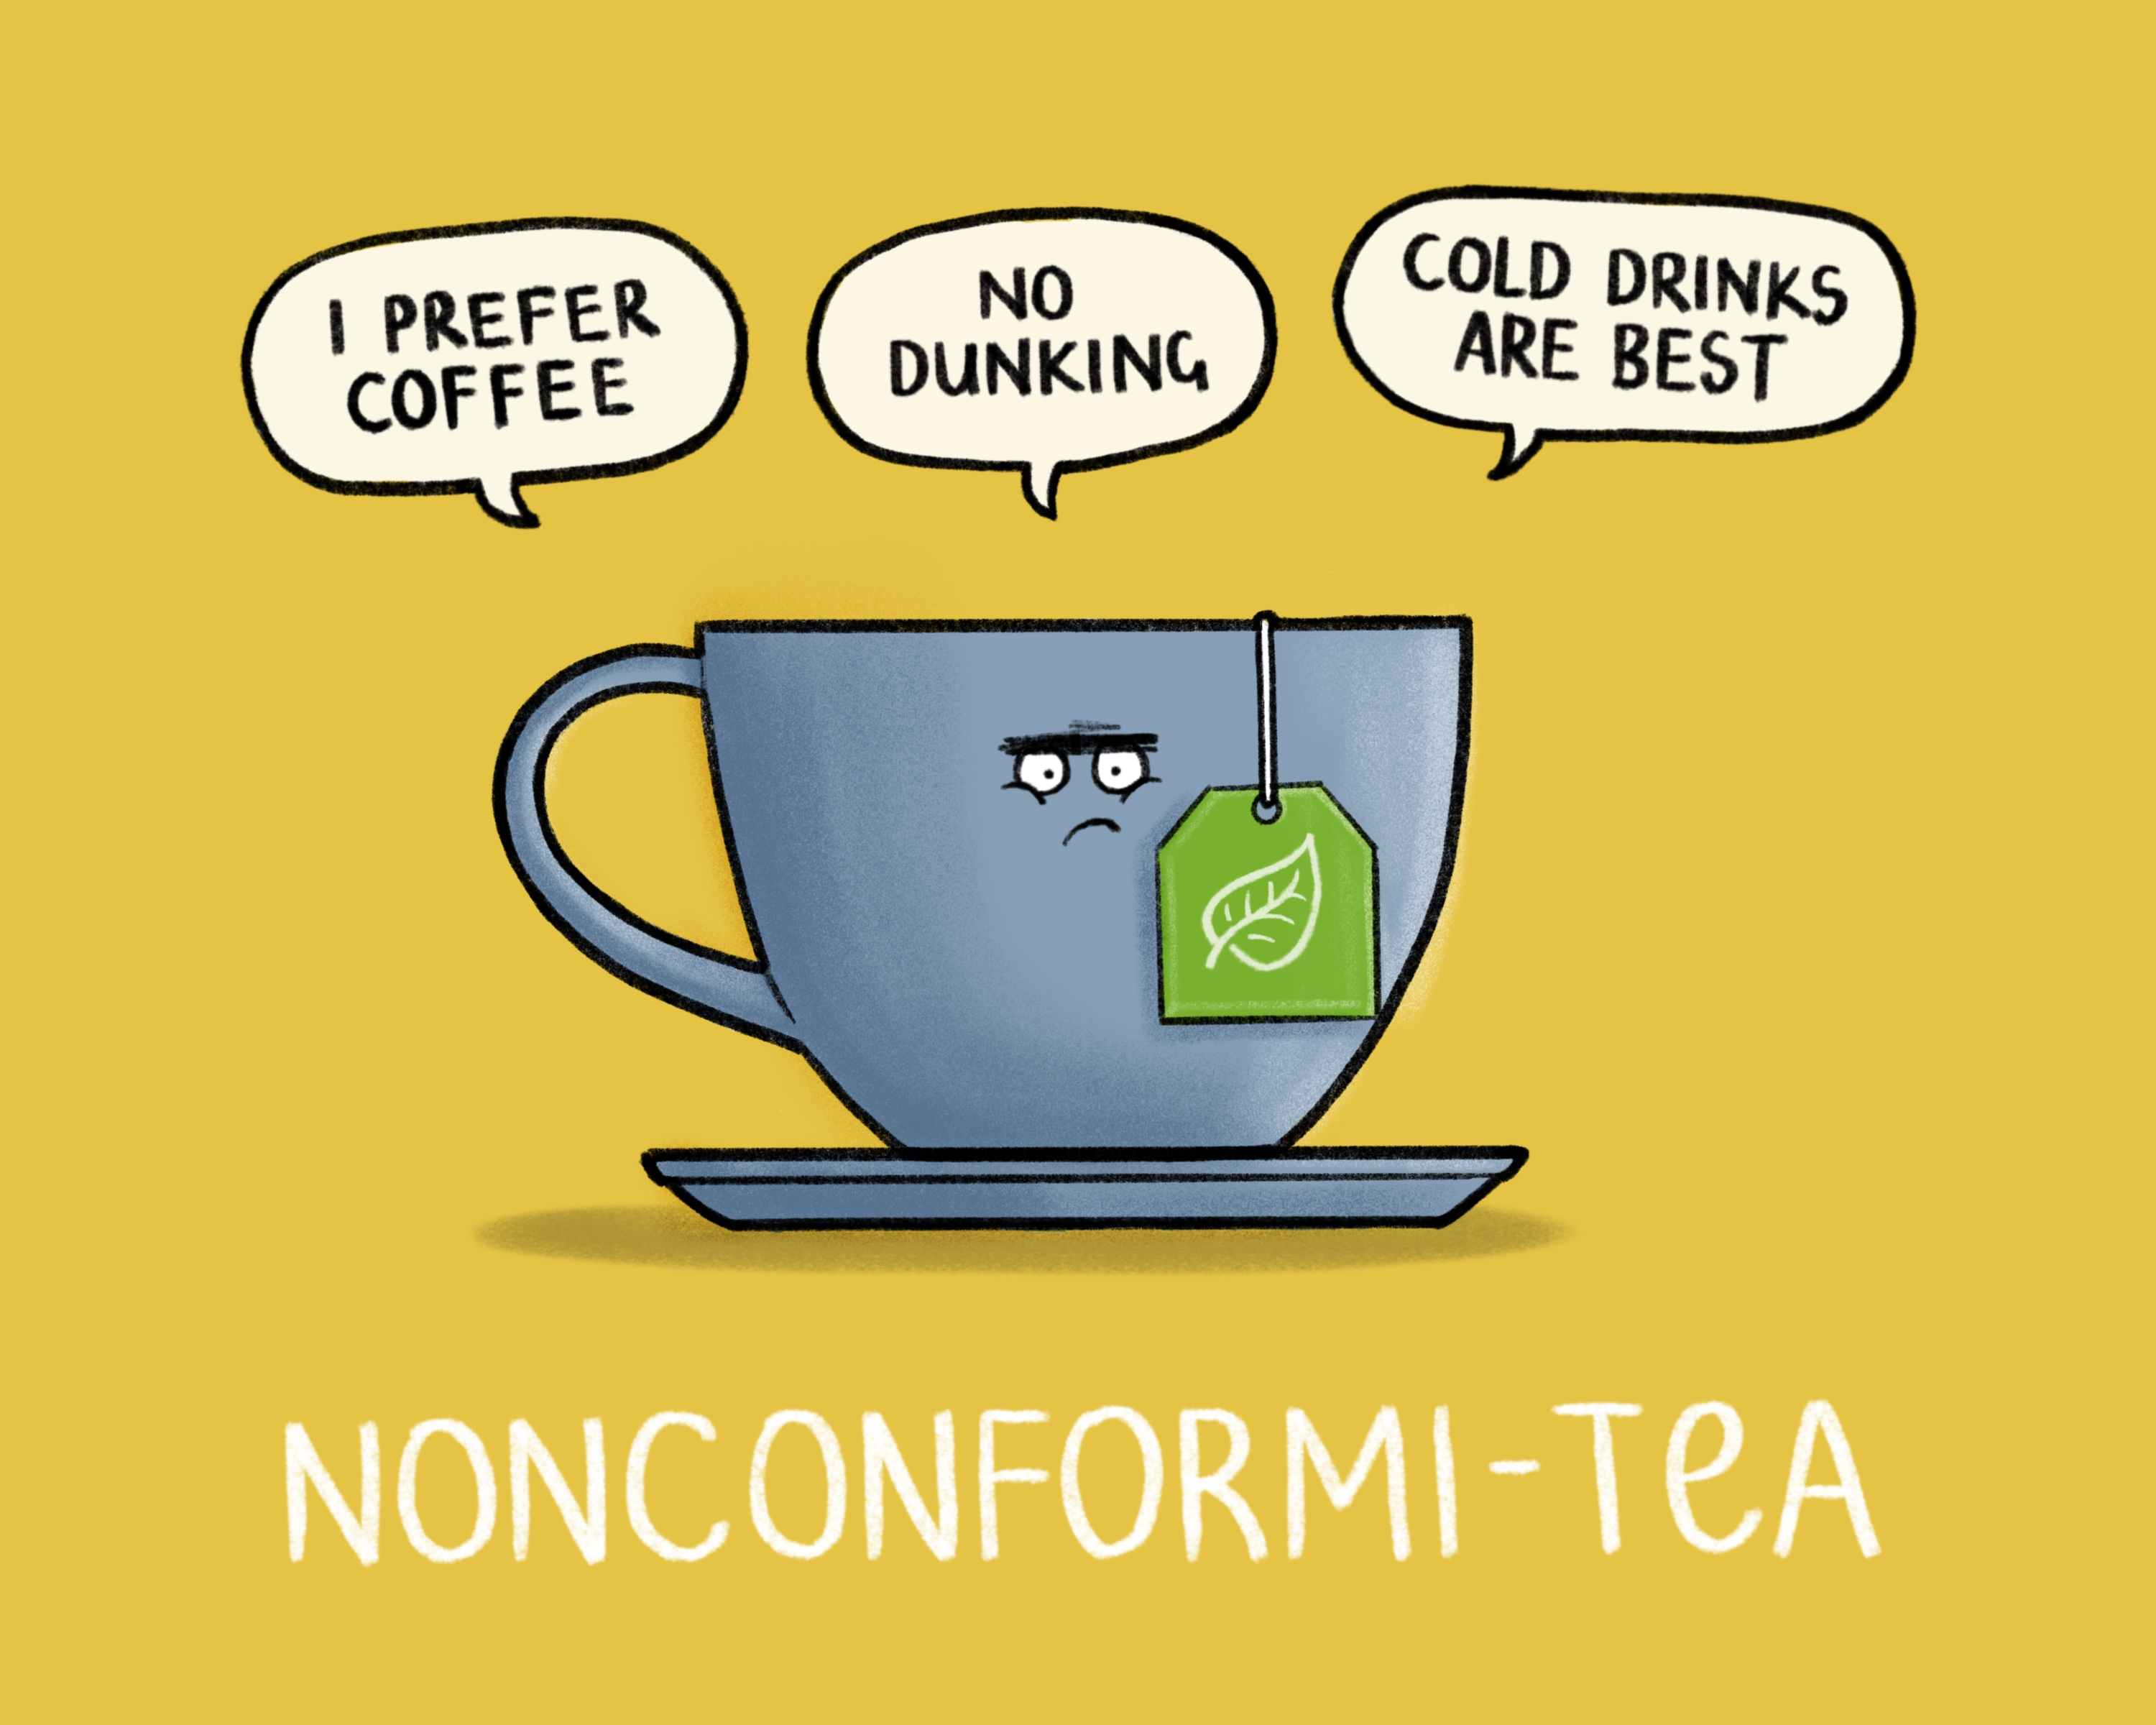 Nonconformi-tea